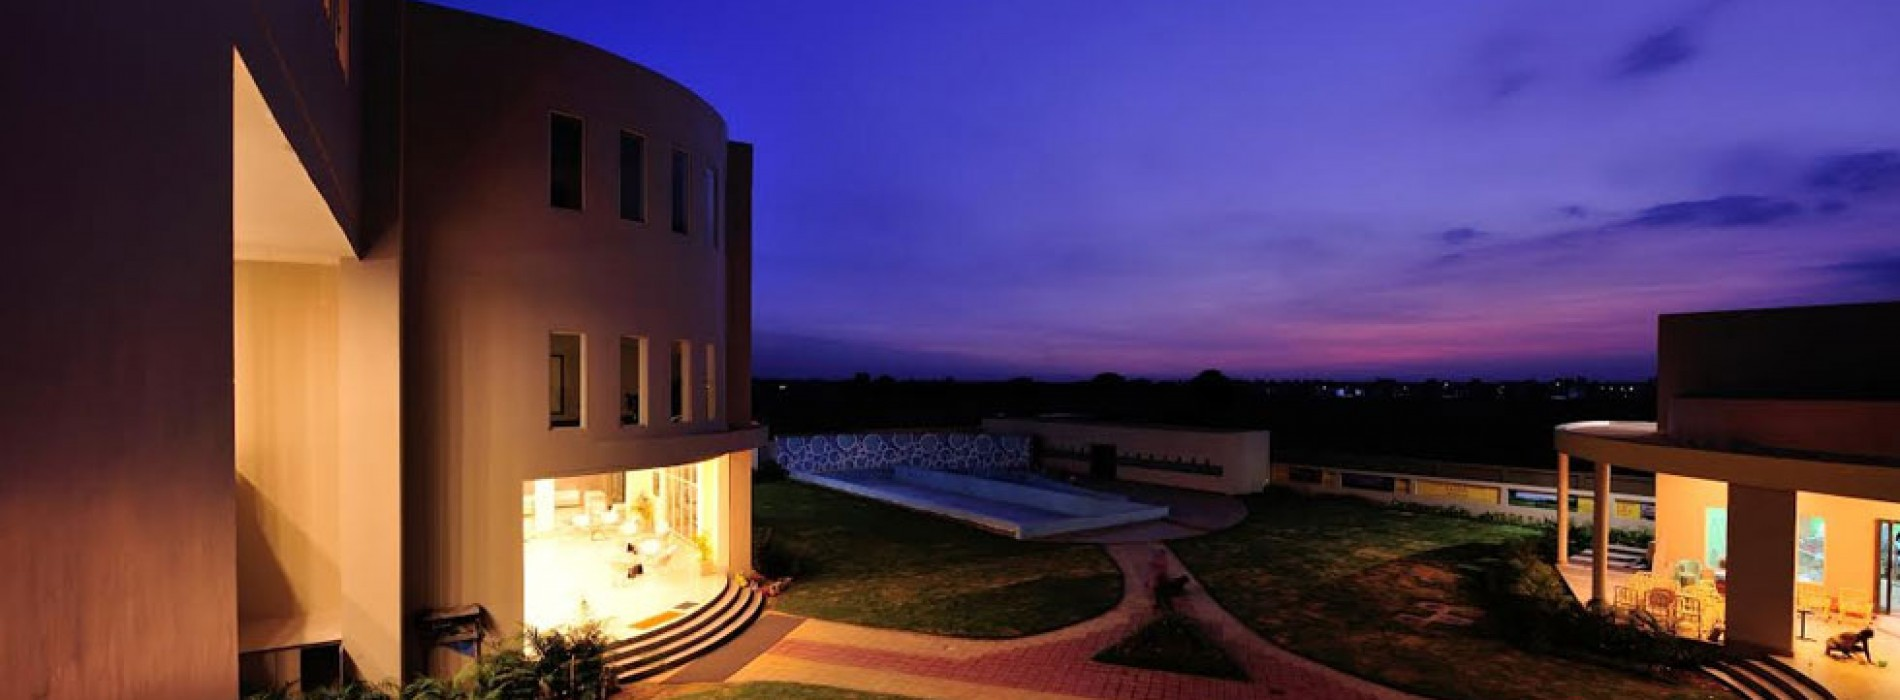 Sinclairs launches Sinclairs Tourist Resort Burdwan – the 7th property in Sinclairs chain